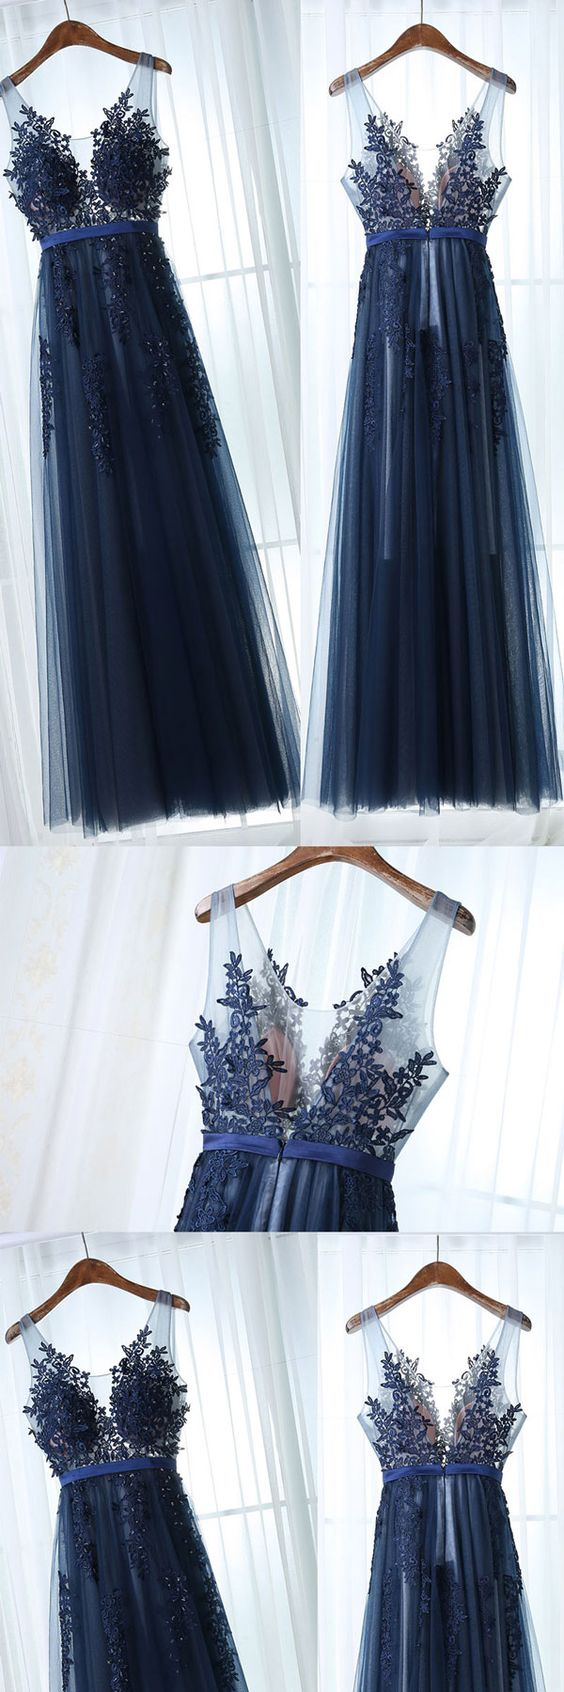 Dark blue tulle lace long prom dress, dark blue bridesmaid dress ,09 ...